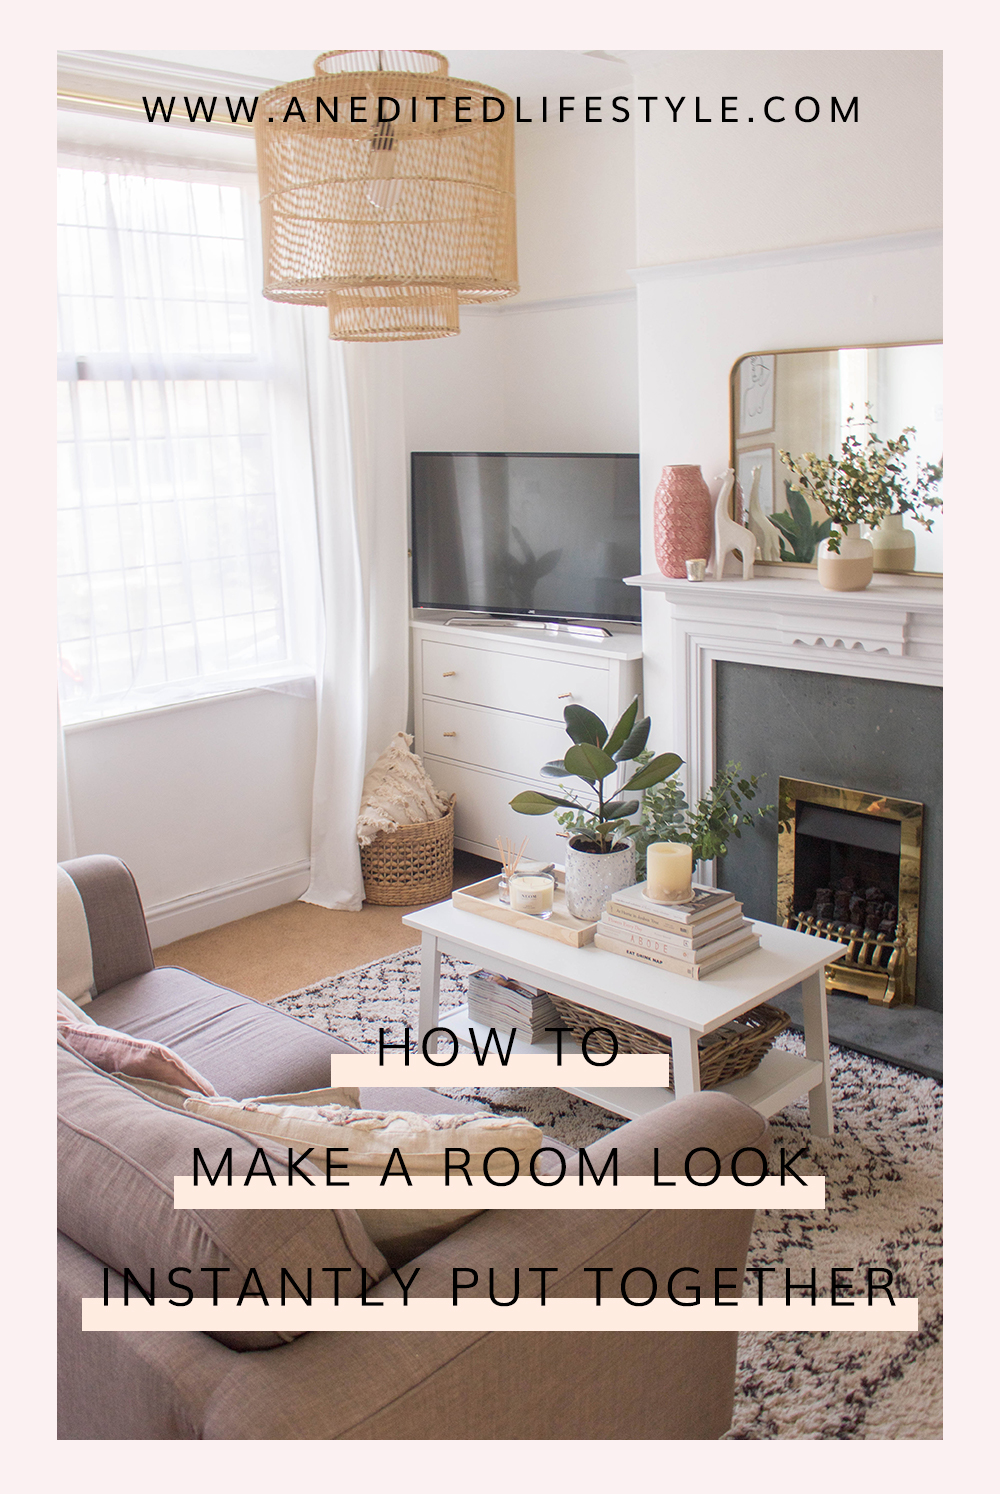 how to make a room look instantly put together pinterest